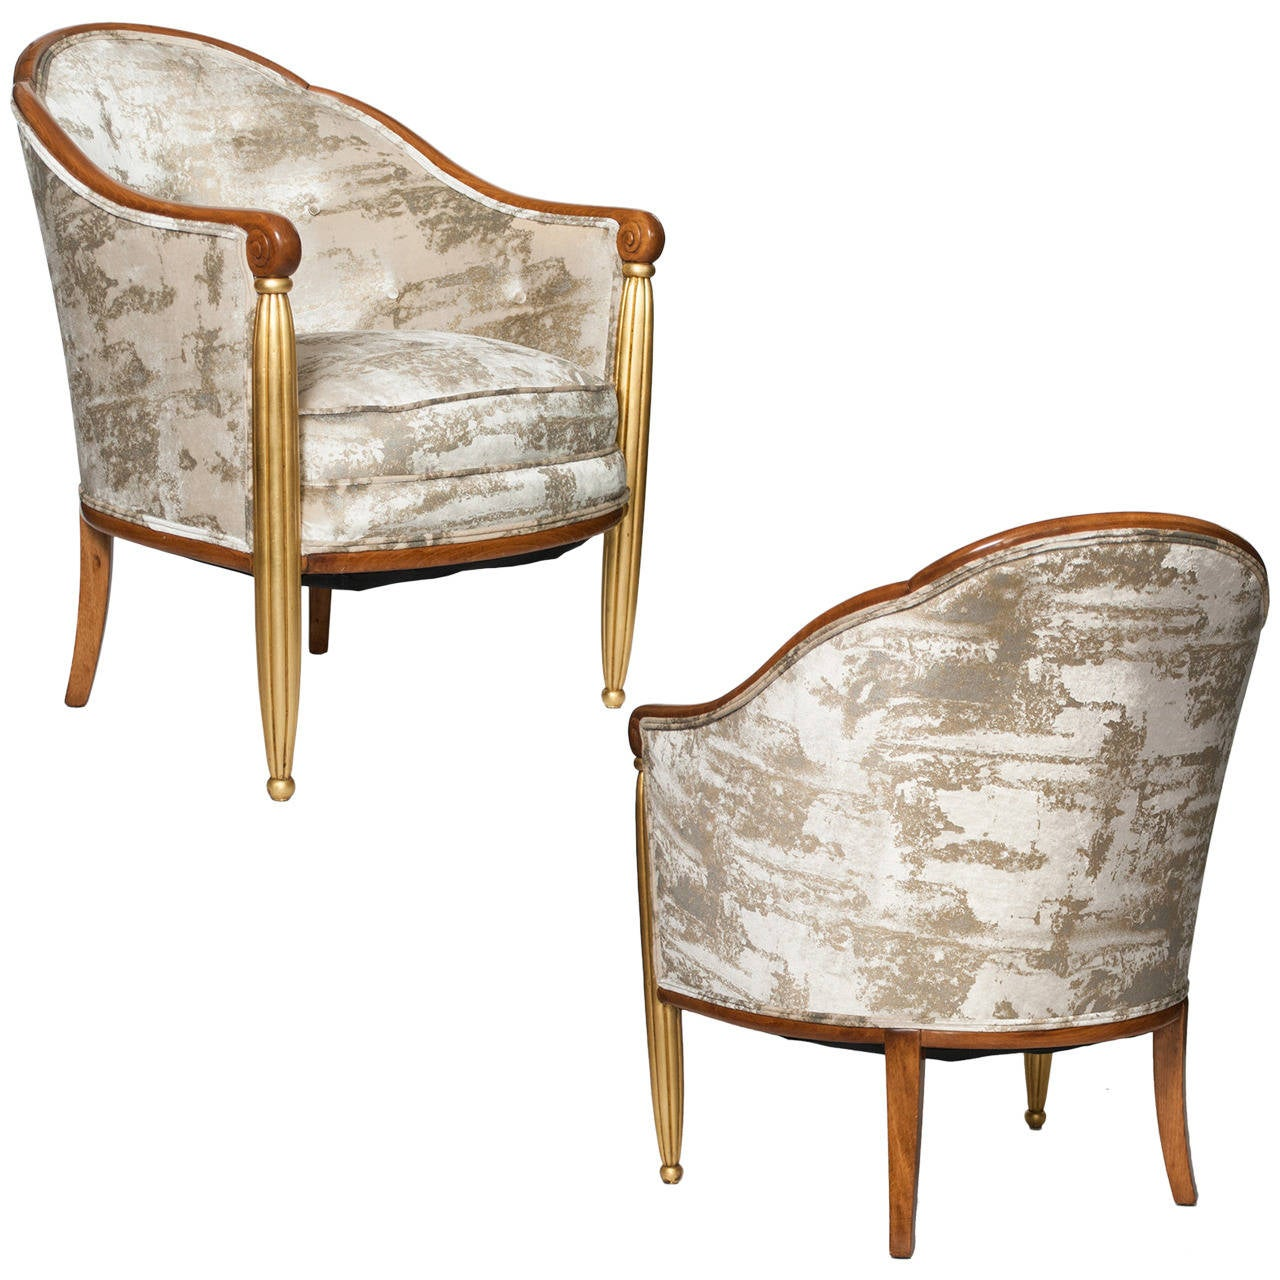 Pair Of French Art Deco Parcel Gilt Bergères Chairs In Velvet 1